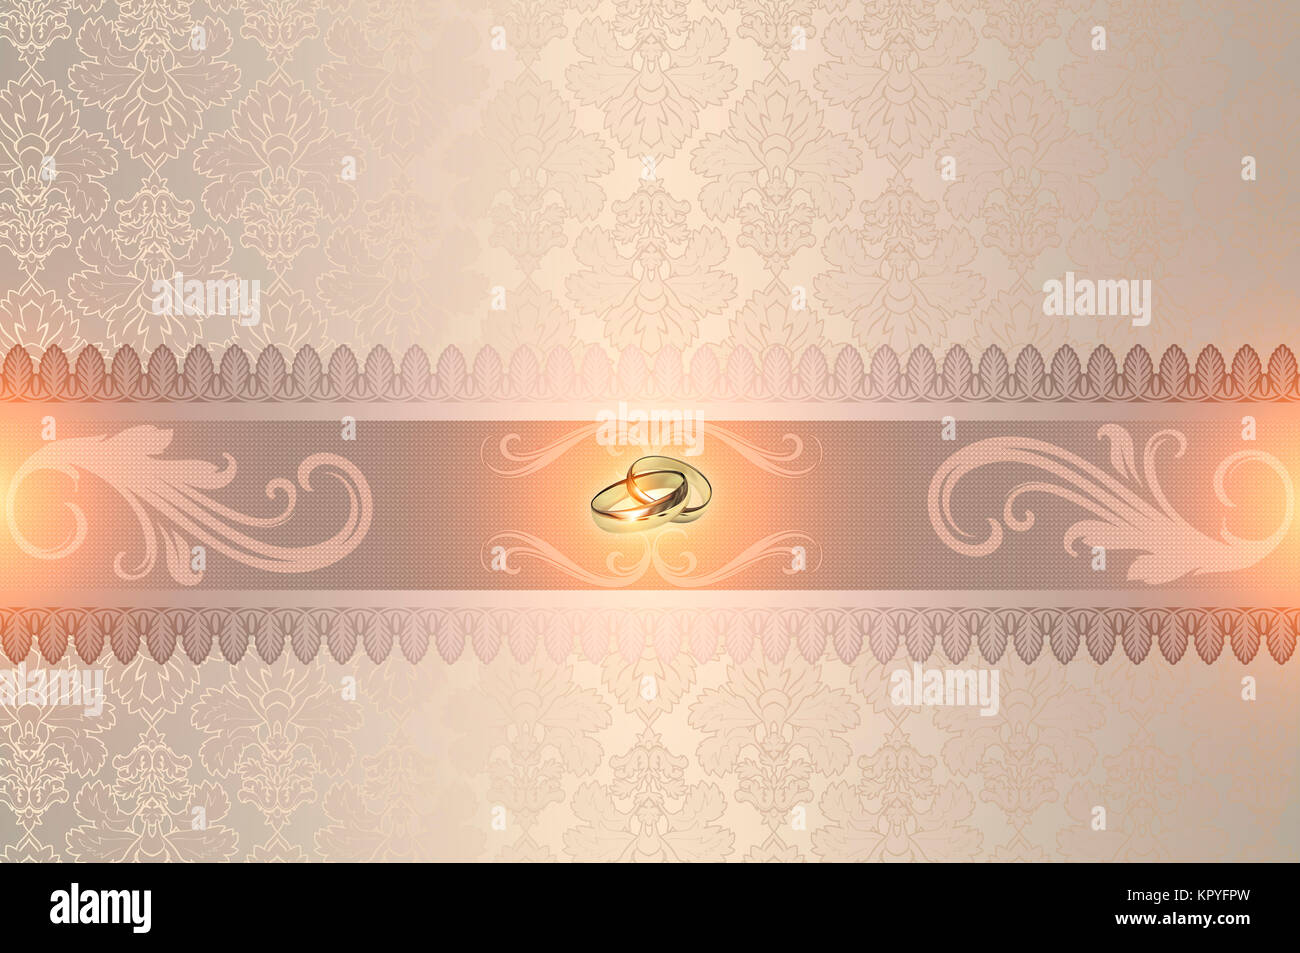 Decorative Wedding Background With Gold Rings And Elegant